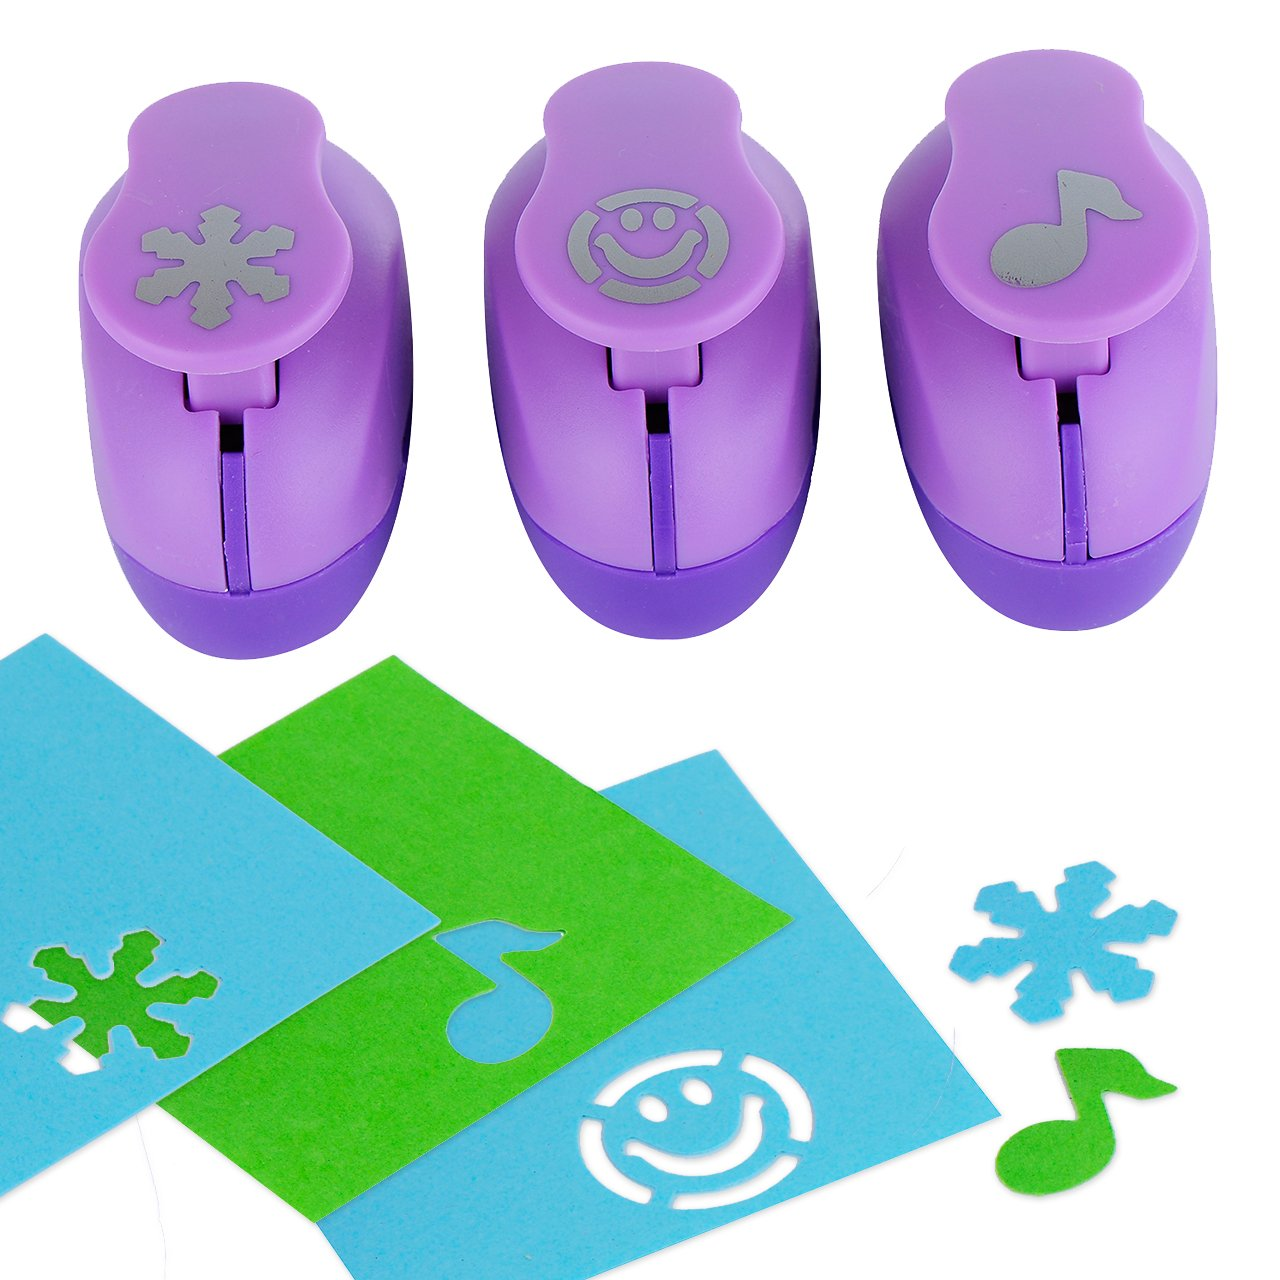 Amazon paper punch hole puncher 3 pack musical note snow amazon paper punch hole puncher 3 pack musical note snow flake happy face personalized paper craft punchers shapes set for scrapbook jeuxipadfo Choice Image